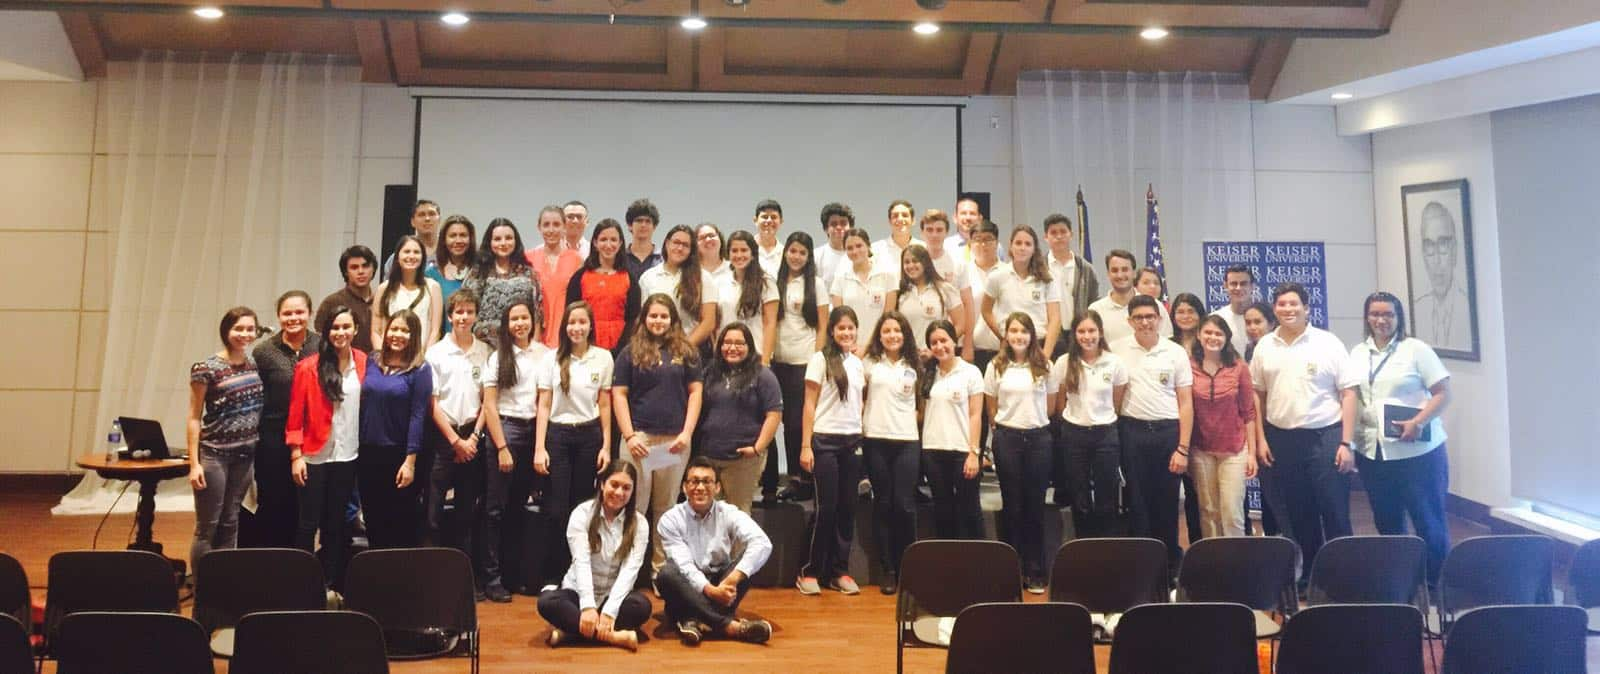 The Latin American Campus Learns About the U.S. Electoral System